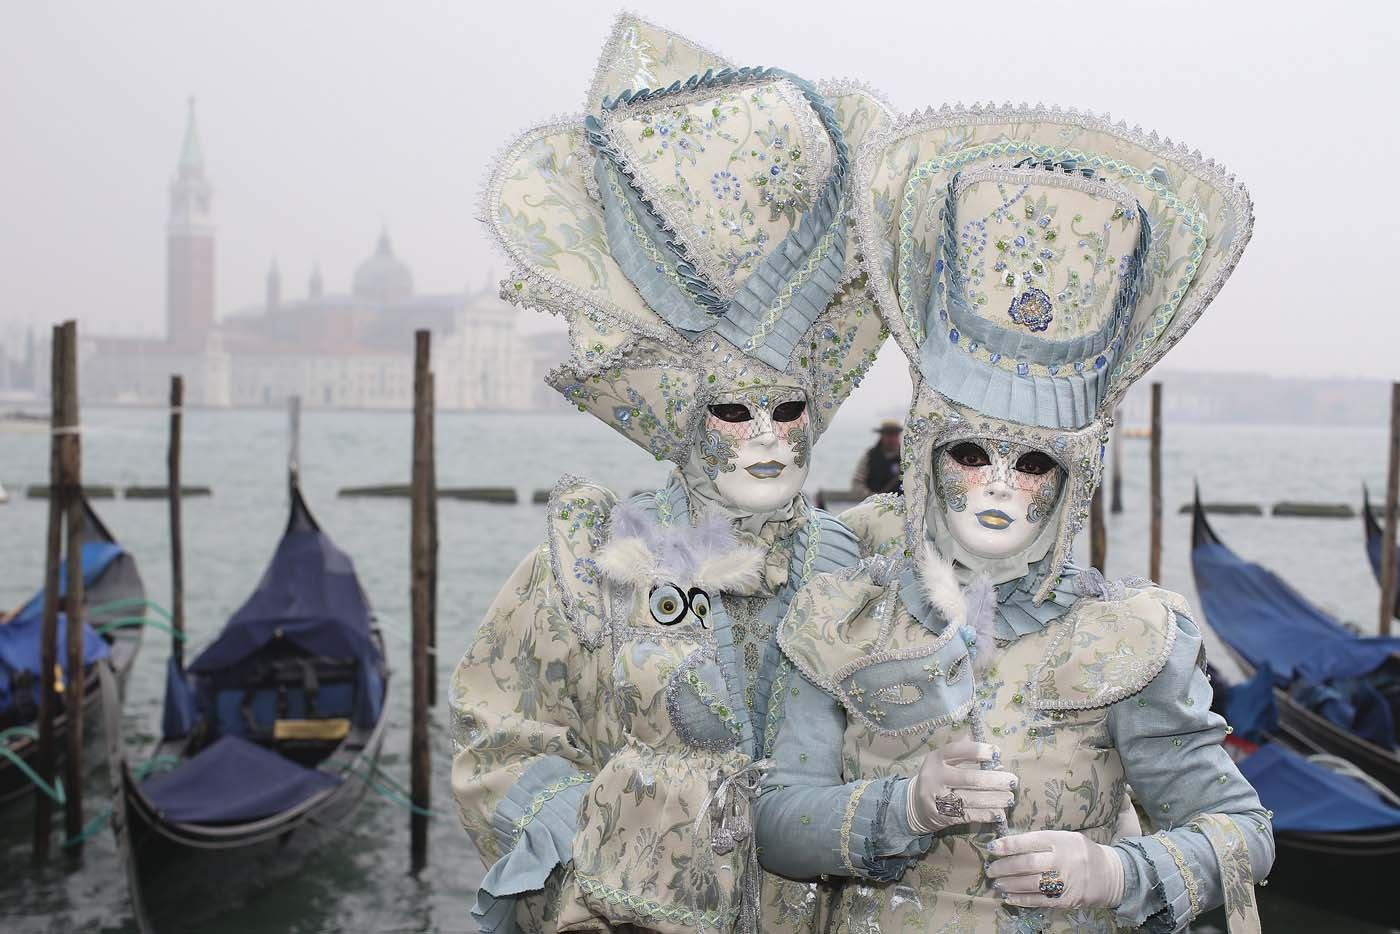 Masked revellers pose in San Marco Piazza during the Venice Carnival, January 30, 2016. REUTERS/Alessandro Bianchi